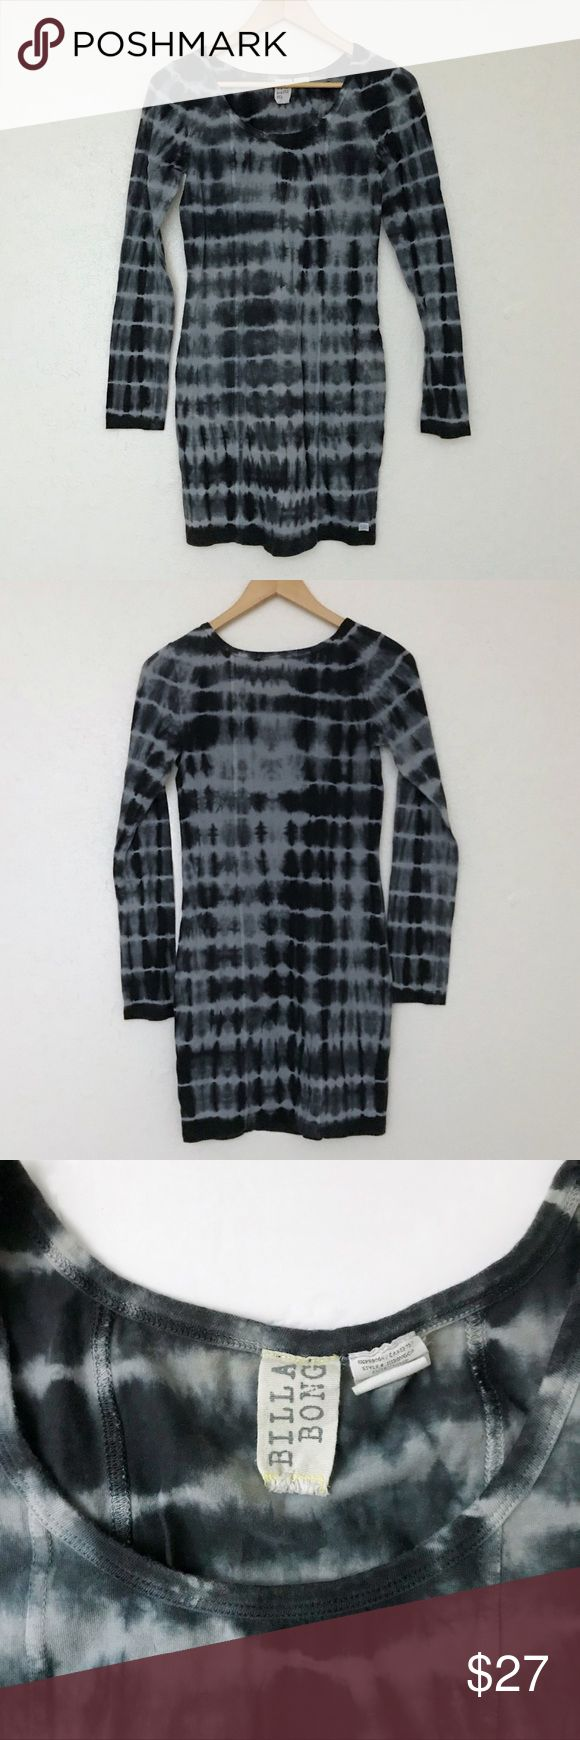 Billabong; Tight Long Sleeve Dress Tye Dye Billabong size large. Thick stretchy material. Excellent preowned condition-only worn once to NYE, no signs of wear.  Has nice long sleeves, tight body-con  style, and the tie dye is shades of a muted dark blueish green and a pale light blue. Billabong Dresses Long Sleeve